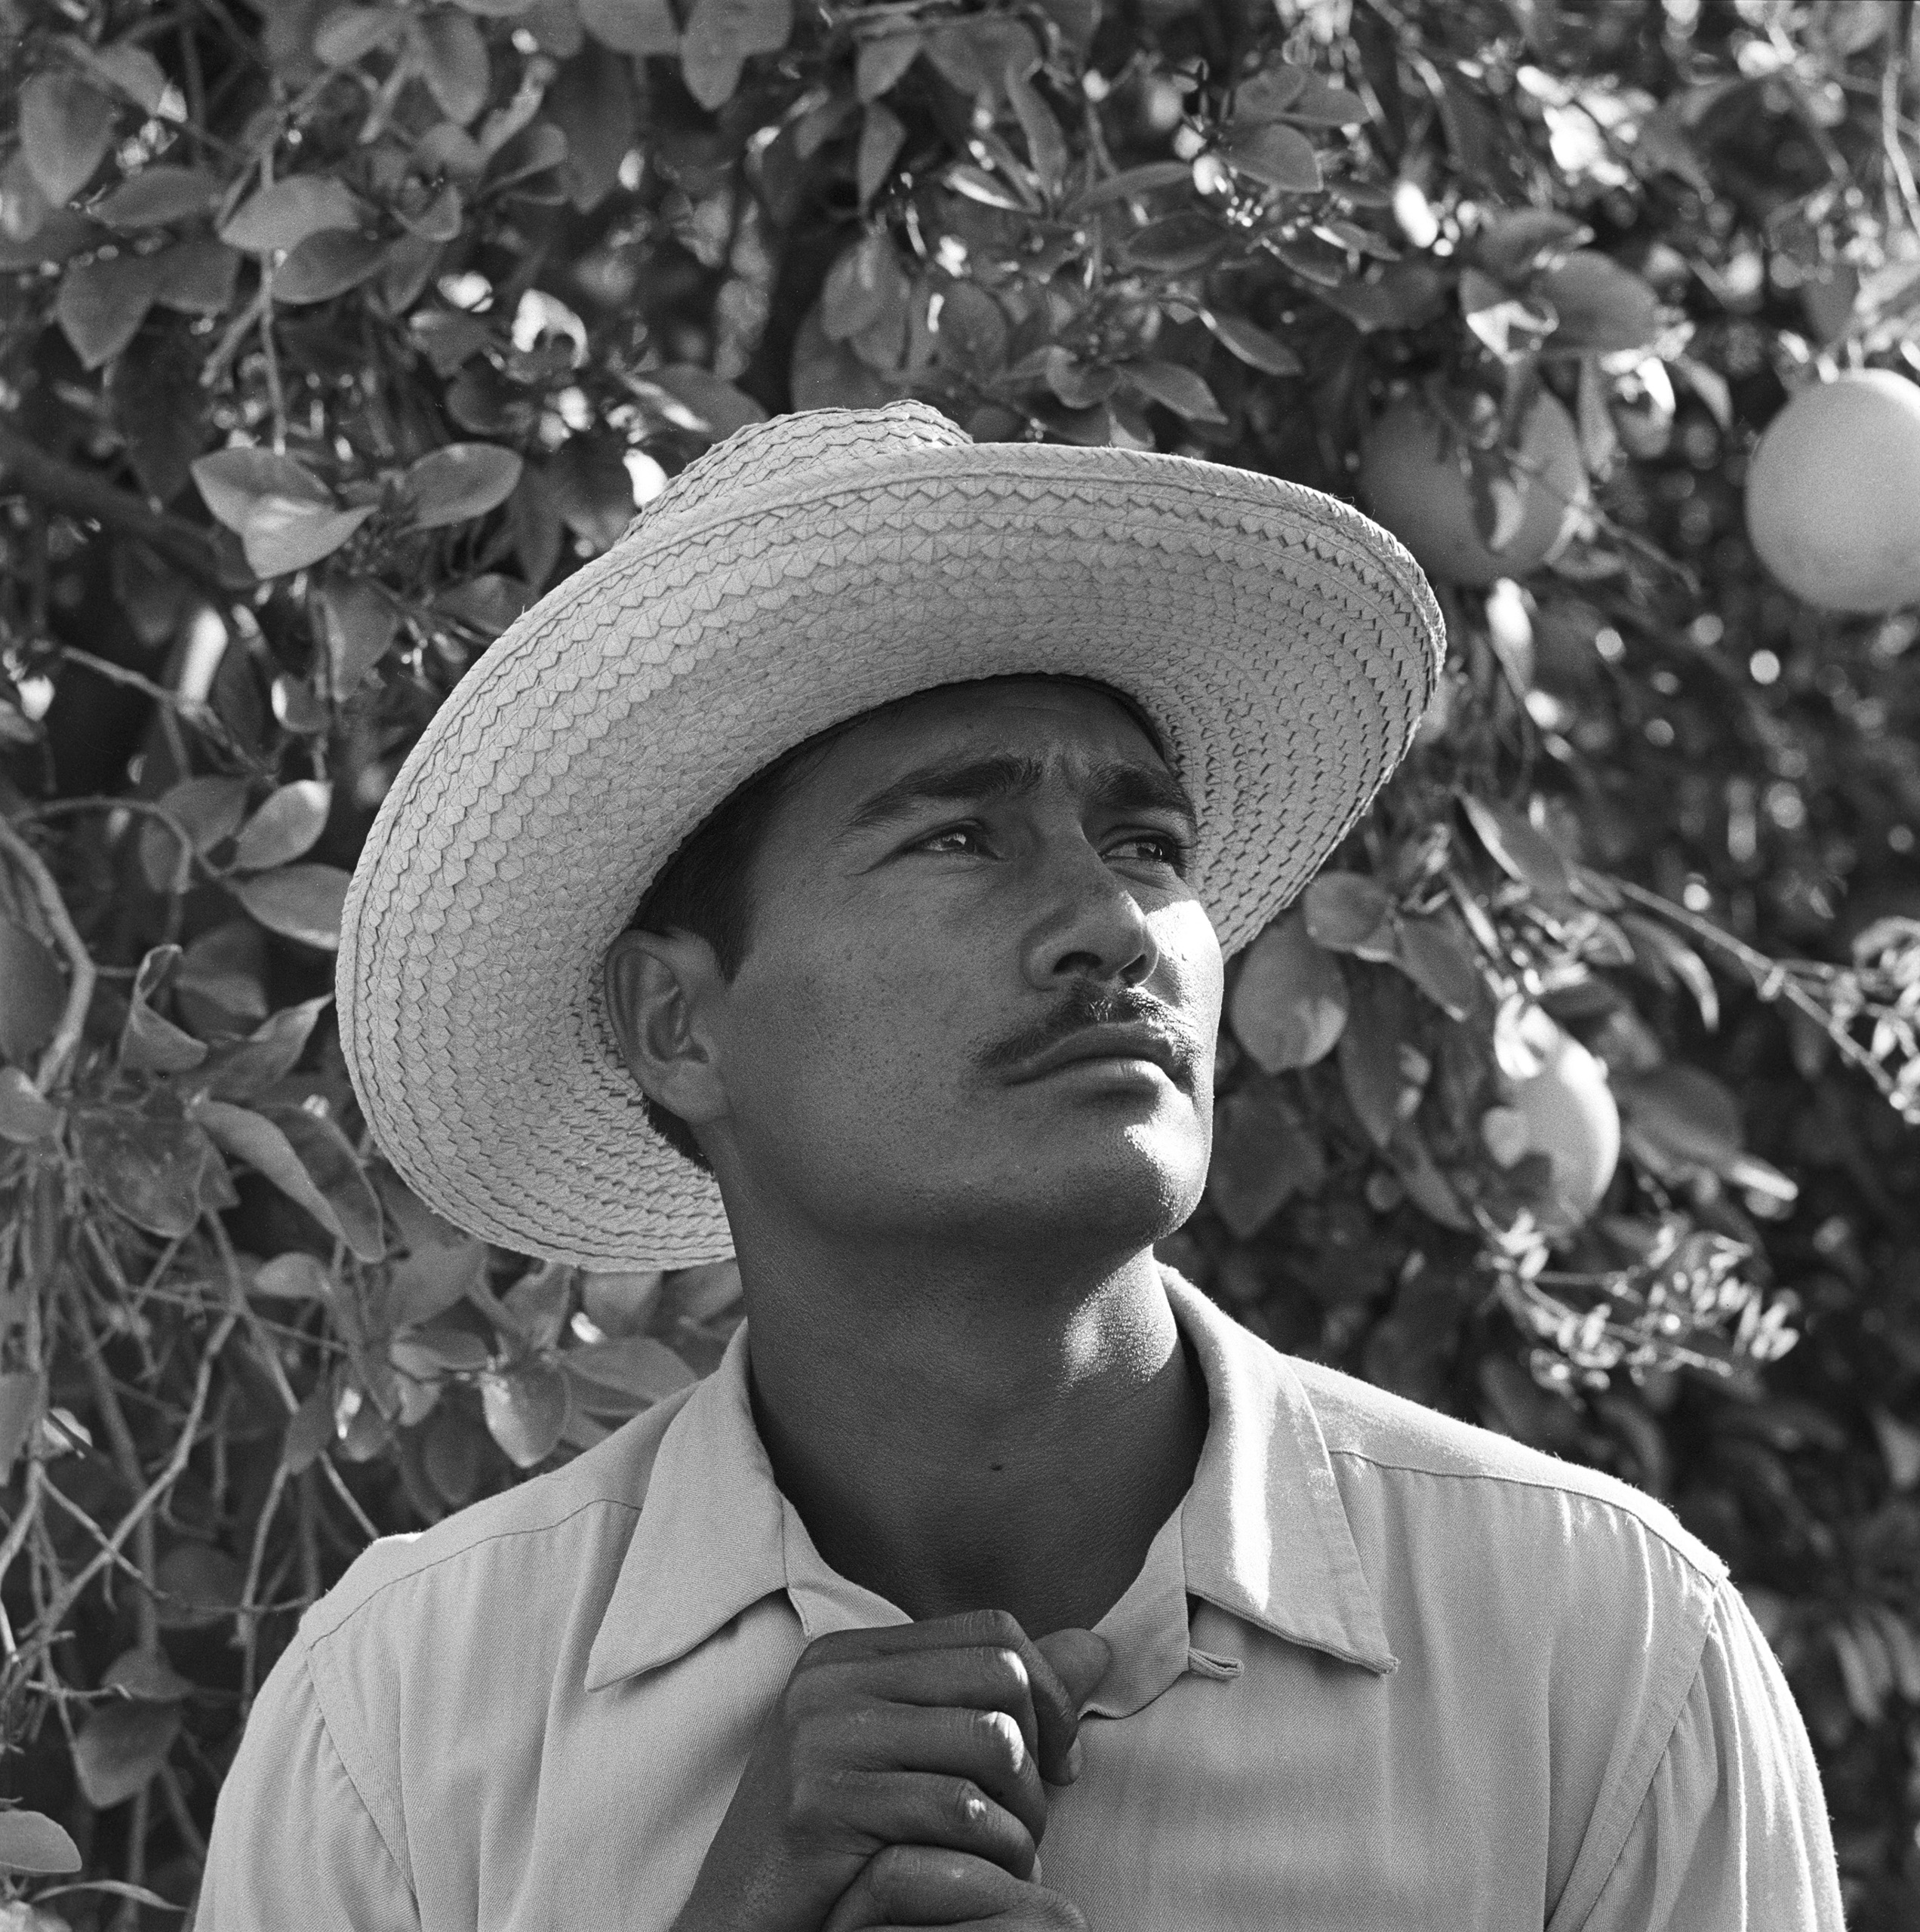 Portrait of Mexican farm laborer, Rafael Tamayo, employed in the United States under the Bracero Program to harvest crops on Californian farms, 1957.